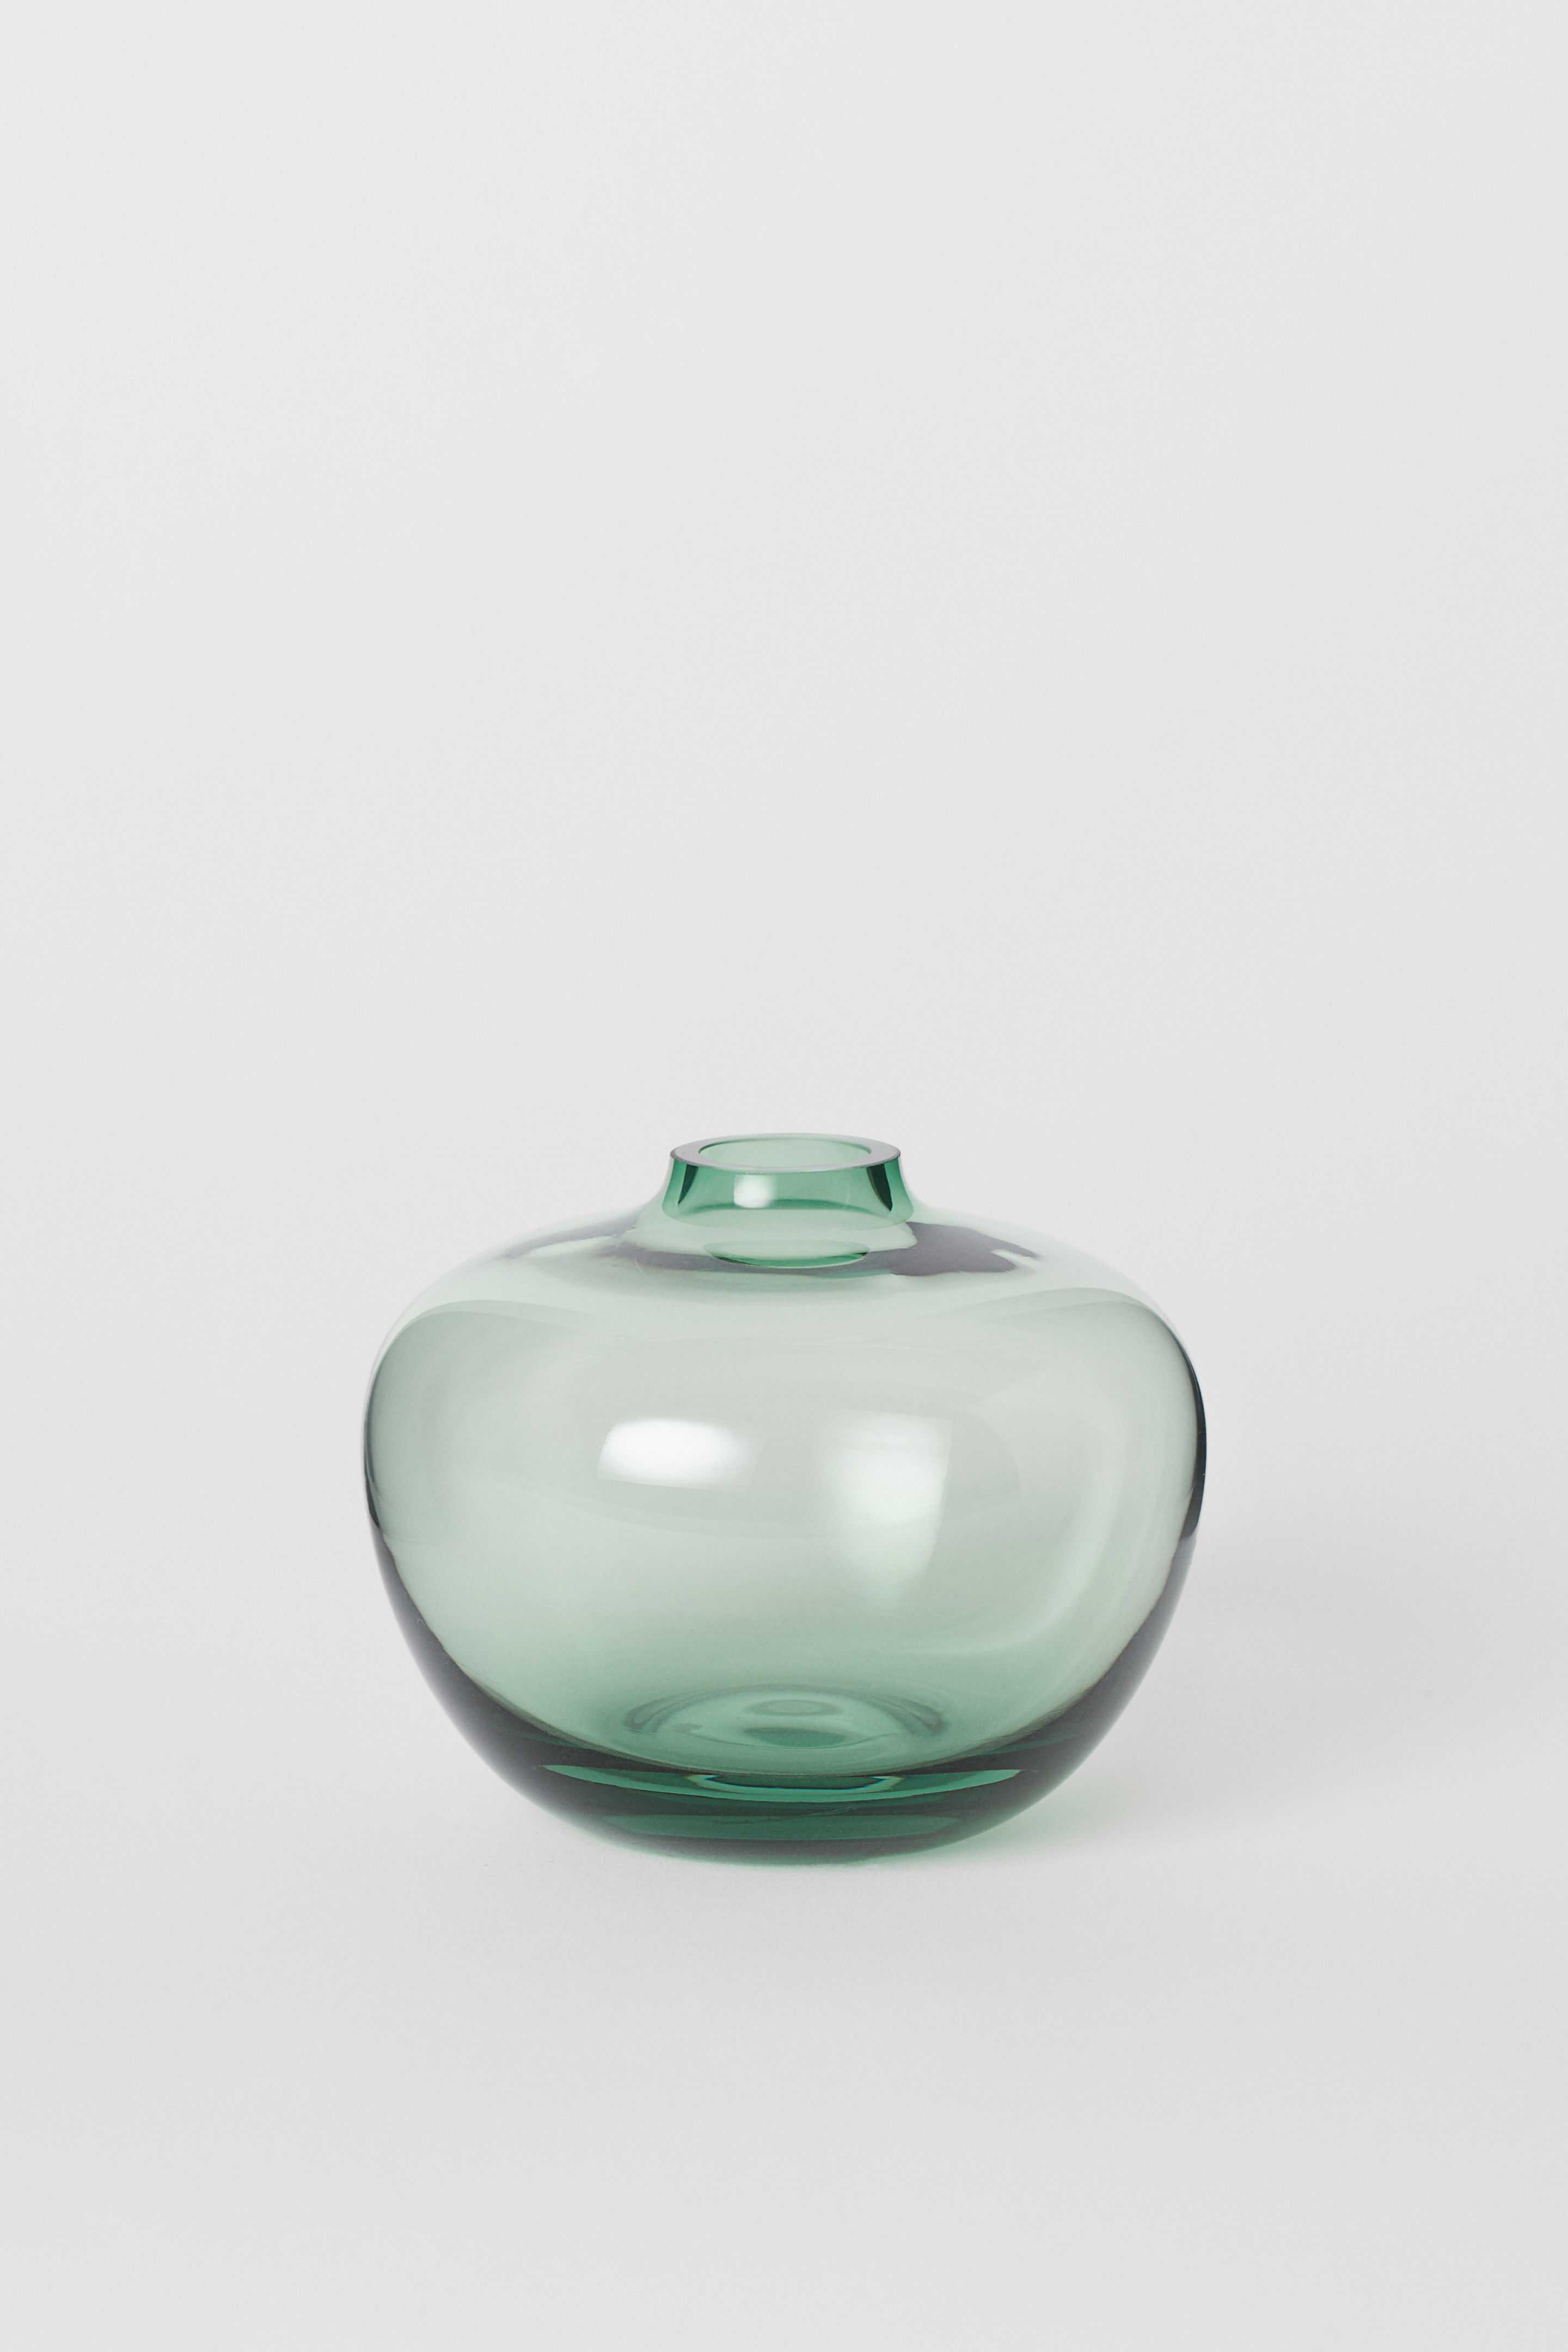 H&M Small Glass Vase